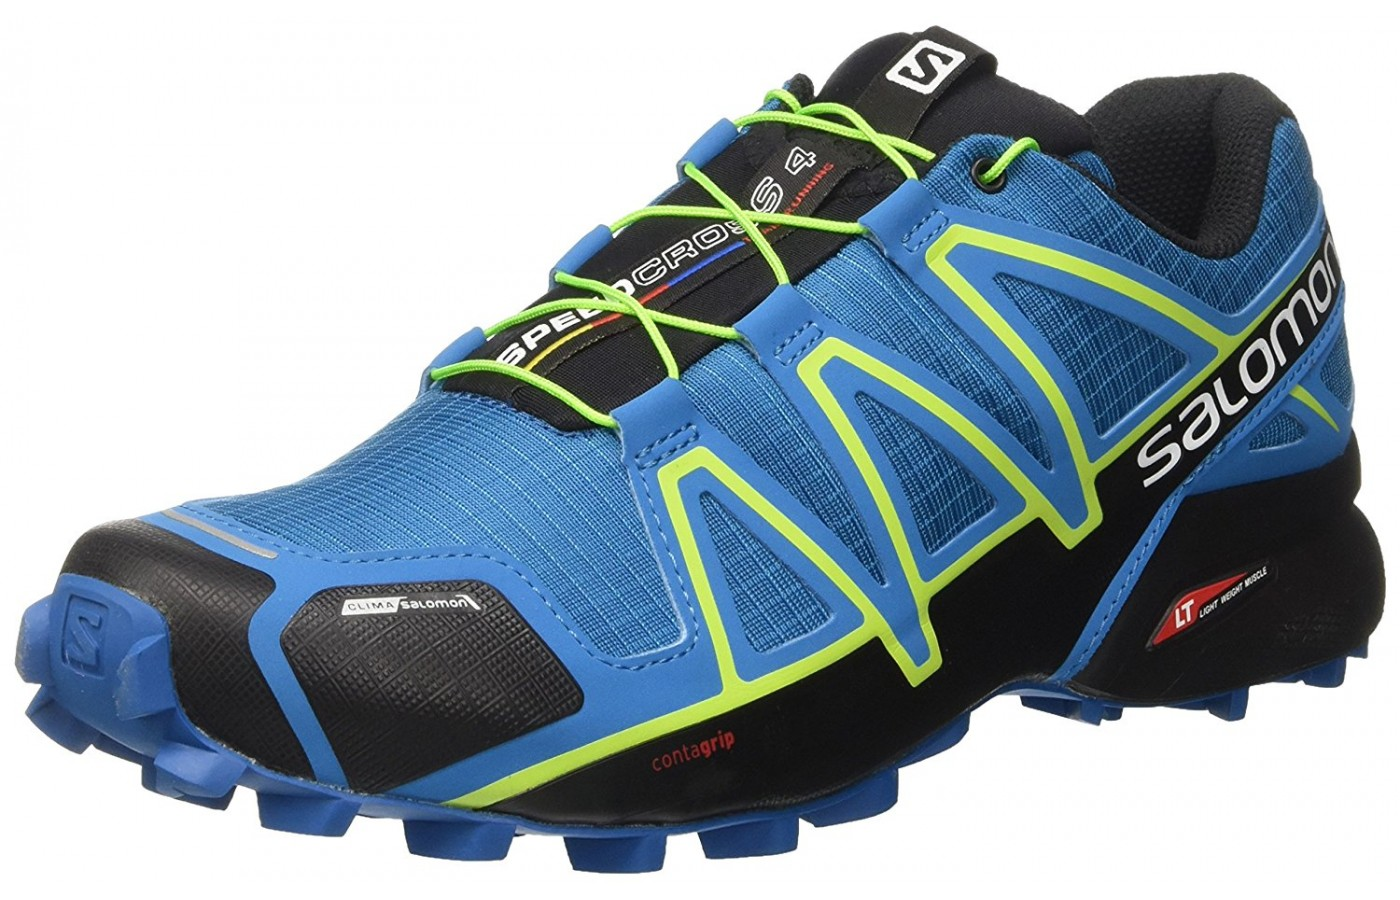 Three quarter view of the Salomon Speedcross 4 trail running shoe